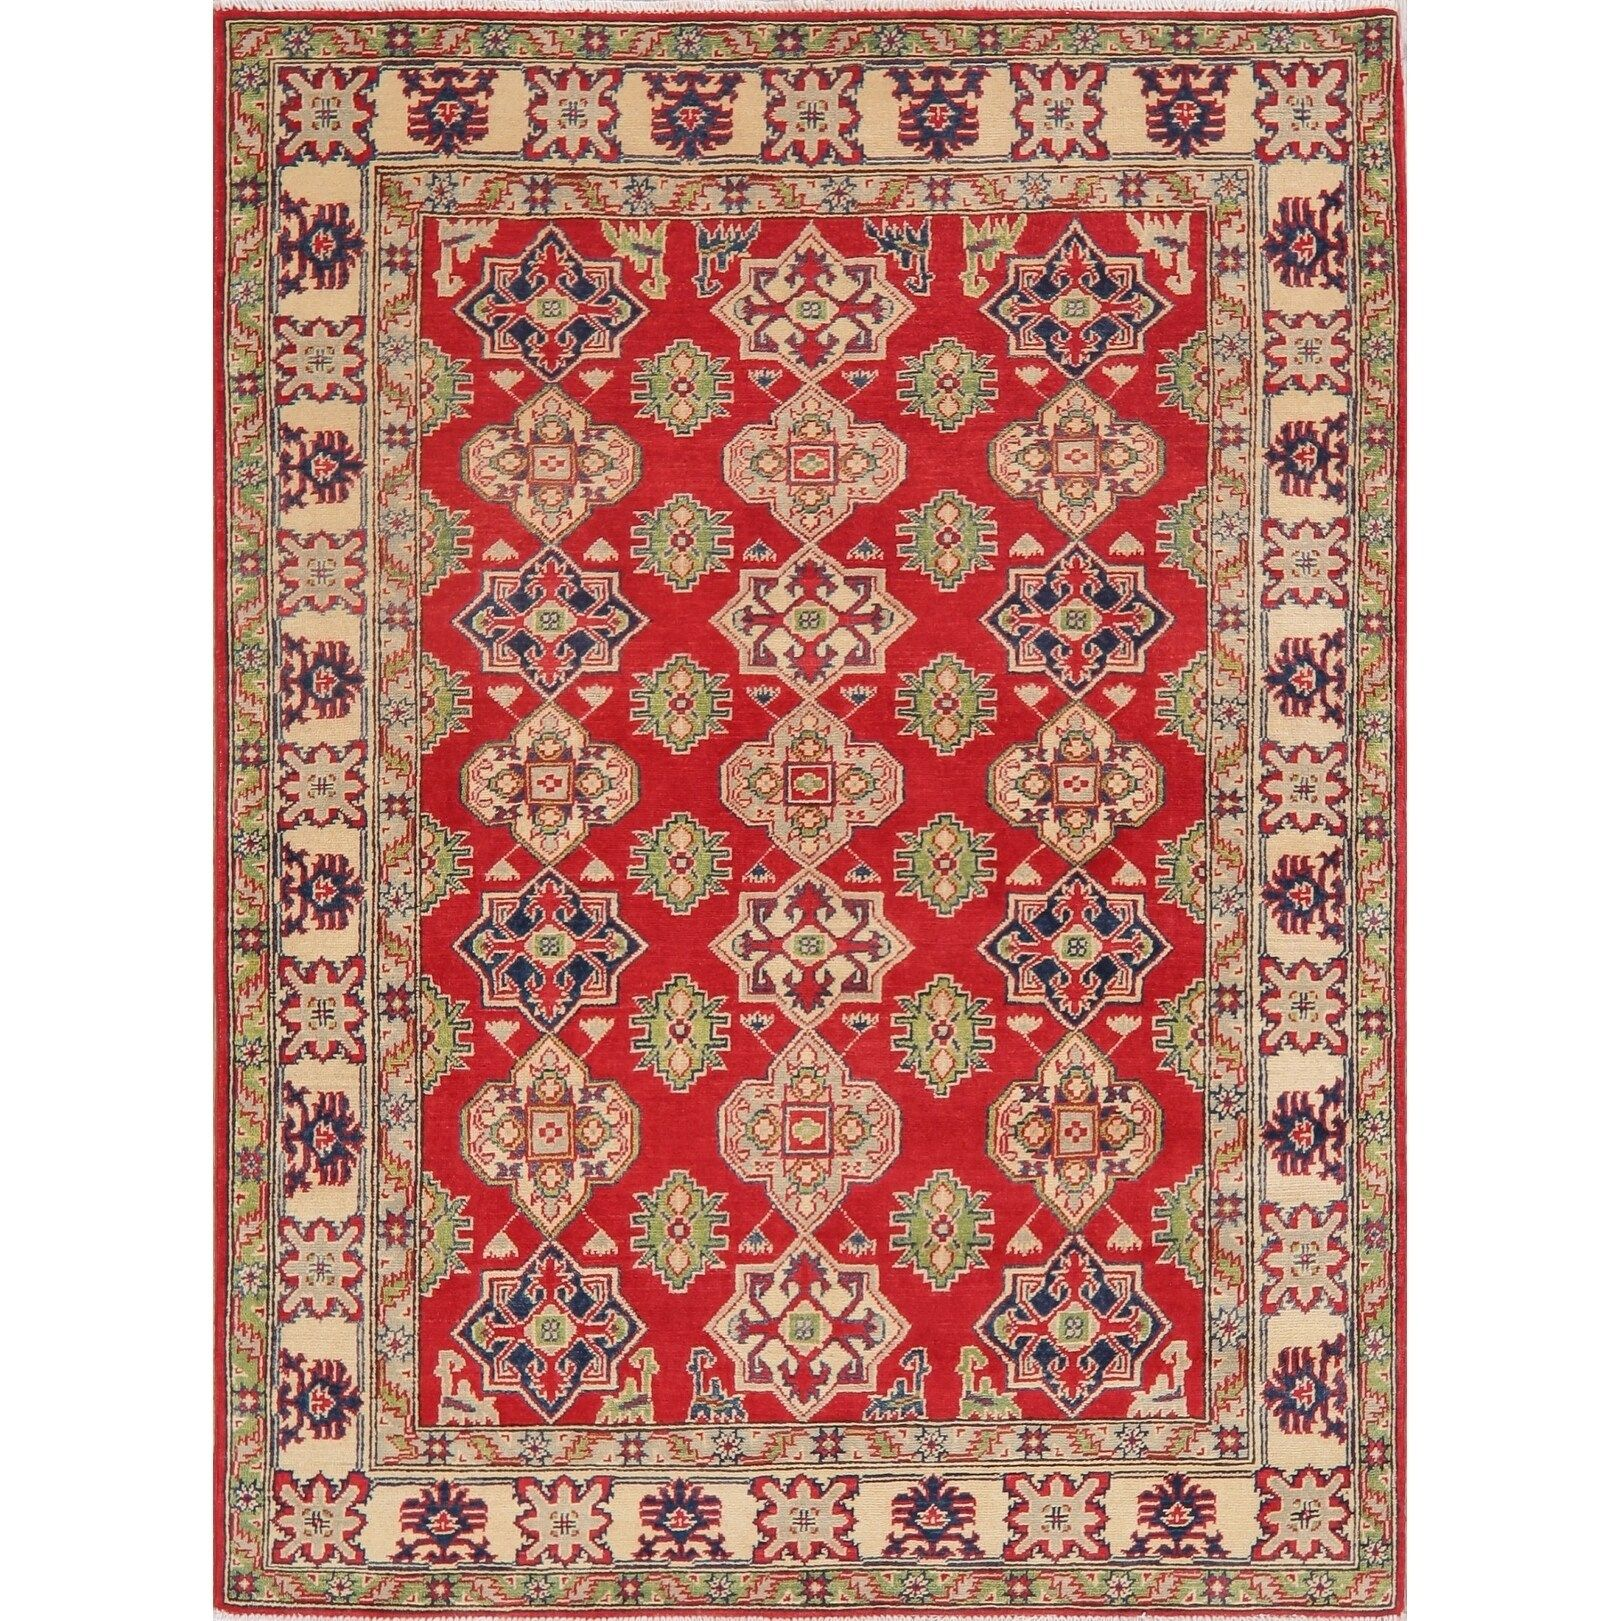 Traditional Kazak Pakistani Carpet Hand Knotted Wool Oriental Area Rug 7 1 X 5 2 In 2020 Area Rugs Beige Area Rugs Colorful Rugs